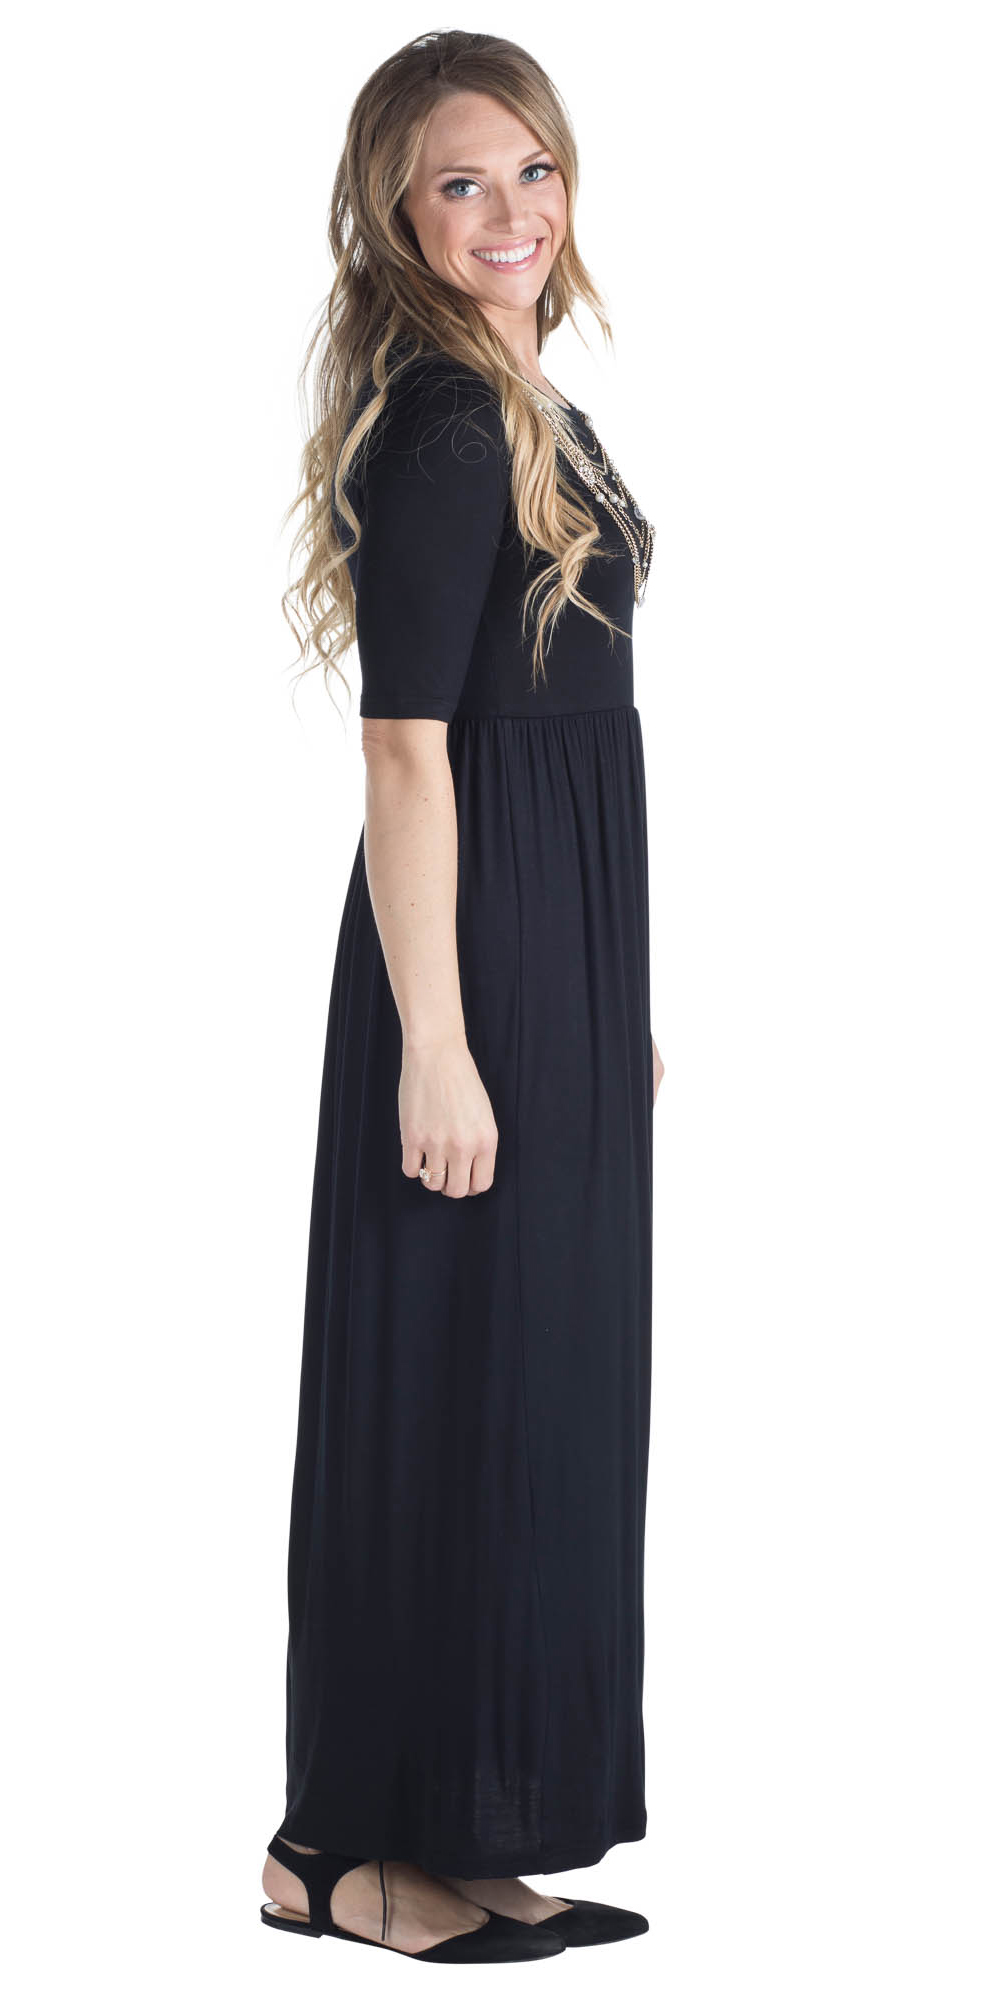 192988b55ea0 ... Jen Modest Maxi Dress with Half Sleeves in Black